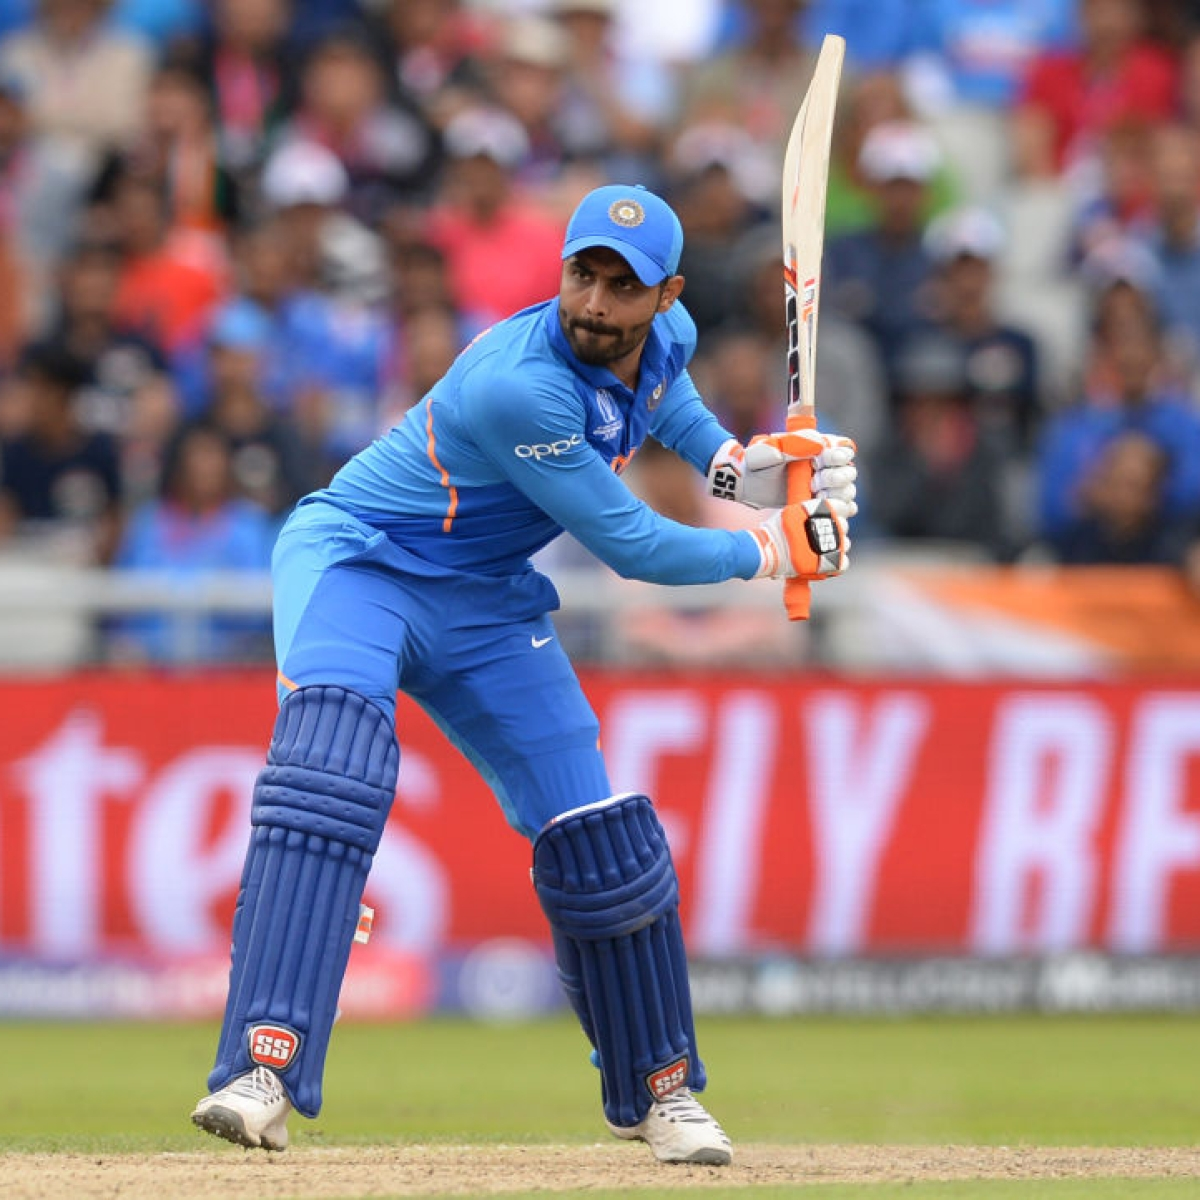 Despite Jadeja's herculean effort, India falls short of Kiwis' total by 22 runs